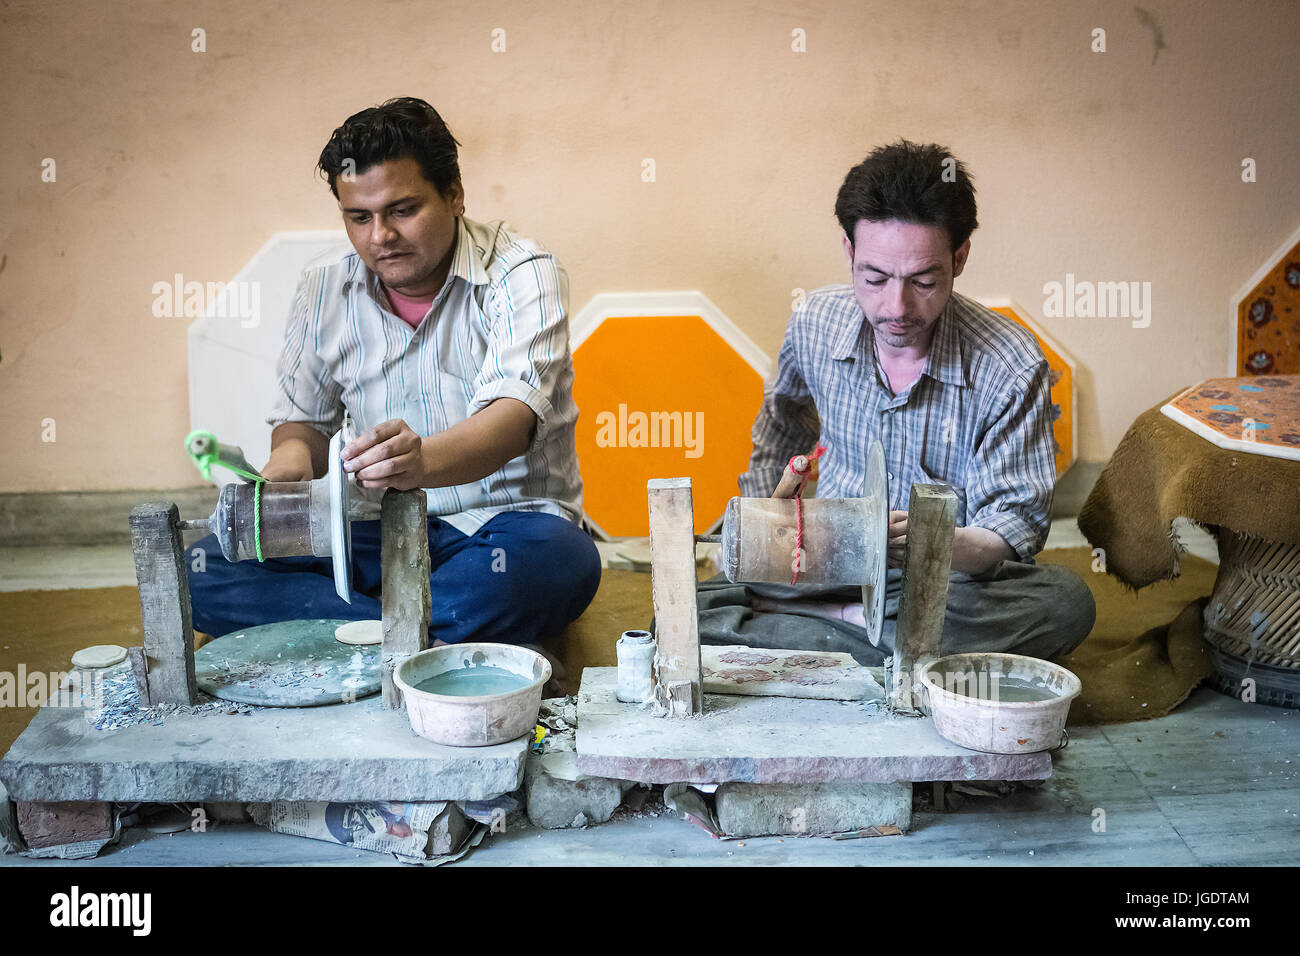 Pale skinned man and darker skinned man in India shaping pieces of marble and semi-precious stones on a hand-powered - Stock Image